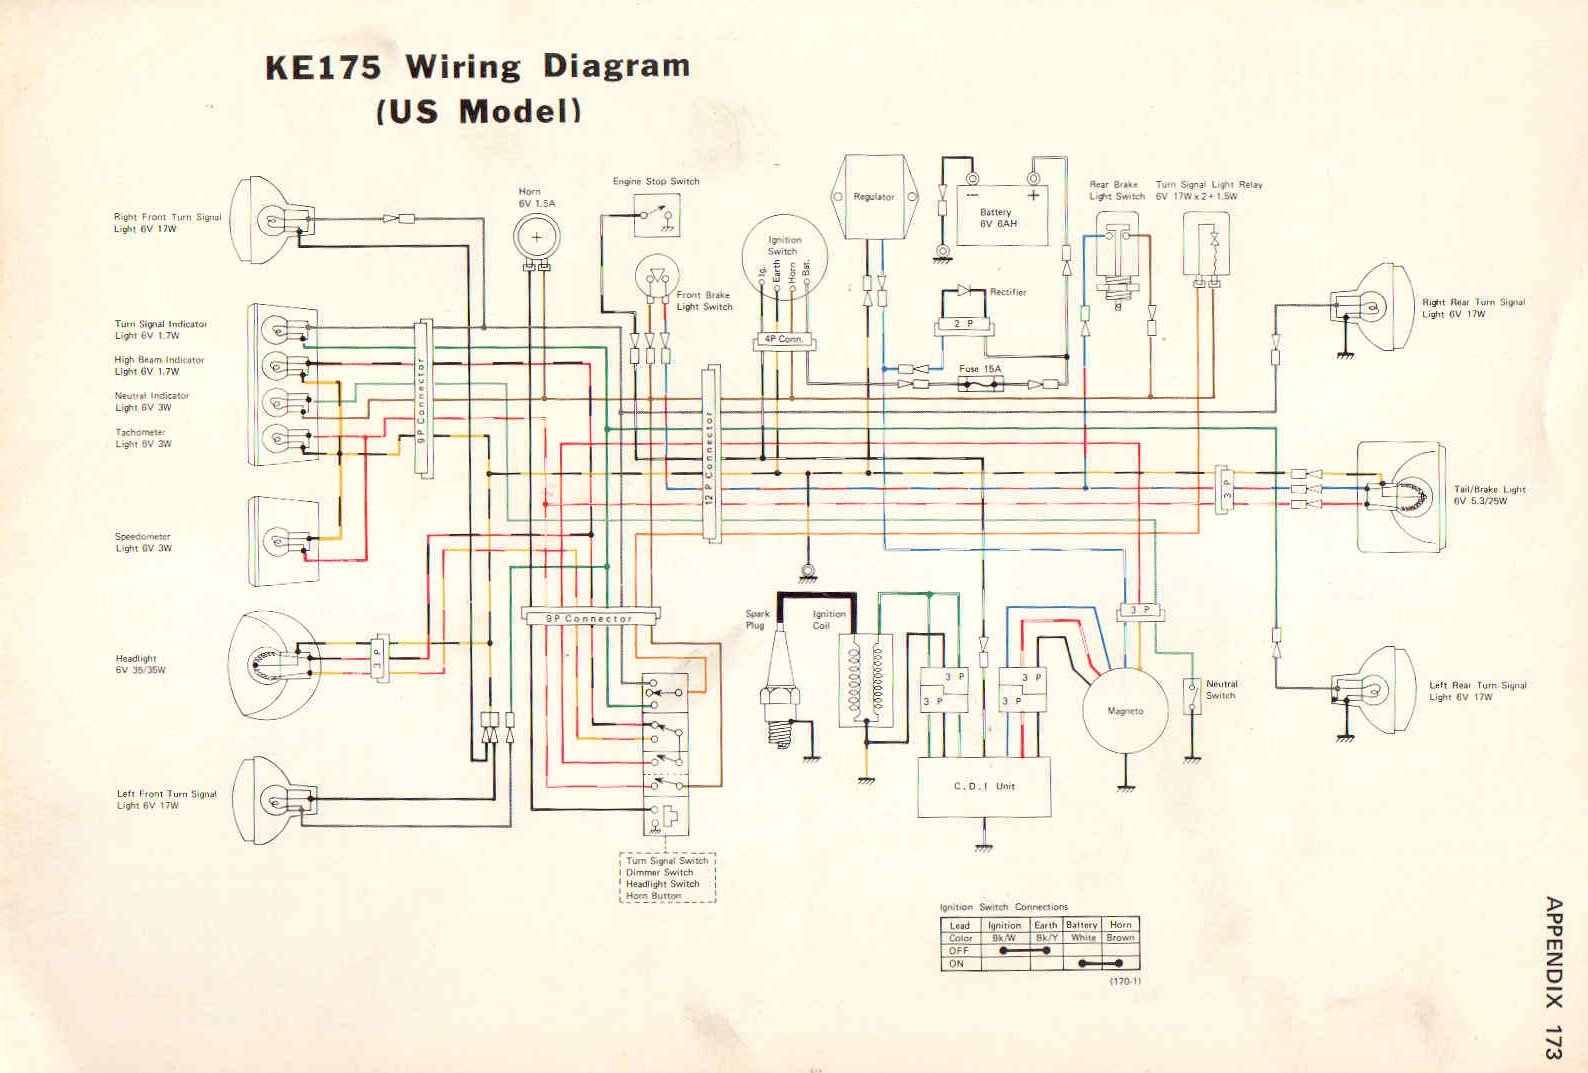 76-77-78-KE175-Wiring-Diagram J Ke Wiring Diagram on troubleshooting diagrams, engine diagrams, electronic circuit diagrams, pinout diagrams, motor diagrams, switch diagrams, transformer diagrams, electrical diagrams, smart car diagrams, series and parallel circuits diagrams, internet of things diagrams, gmc fuse box diagrams, battery diagrams, hvac diagrams, lighting diagrams, friendship bracelet diagrams, honda motorcycle repair diagrams, led circuit diagrams, sincgars radio configurations diagrams,